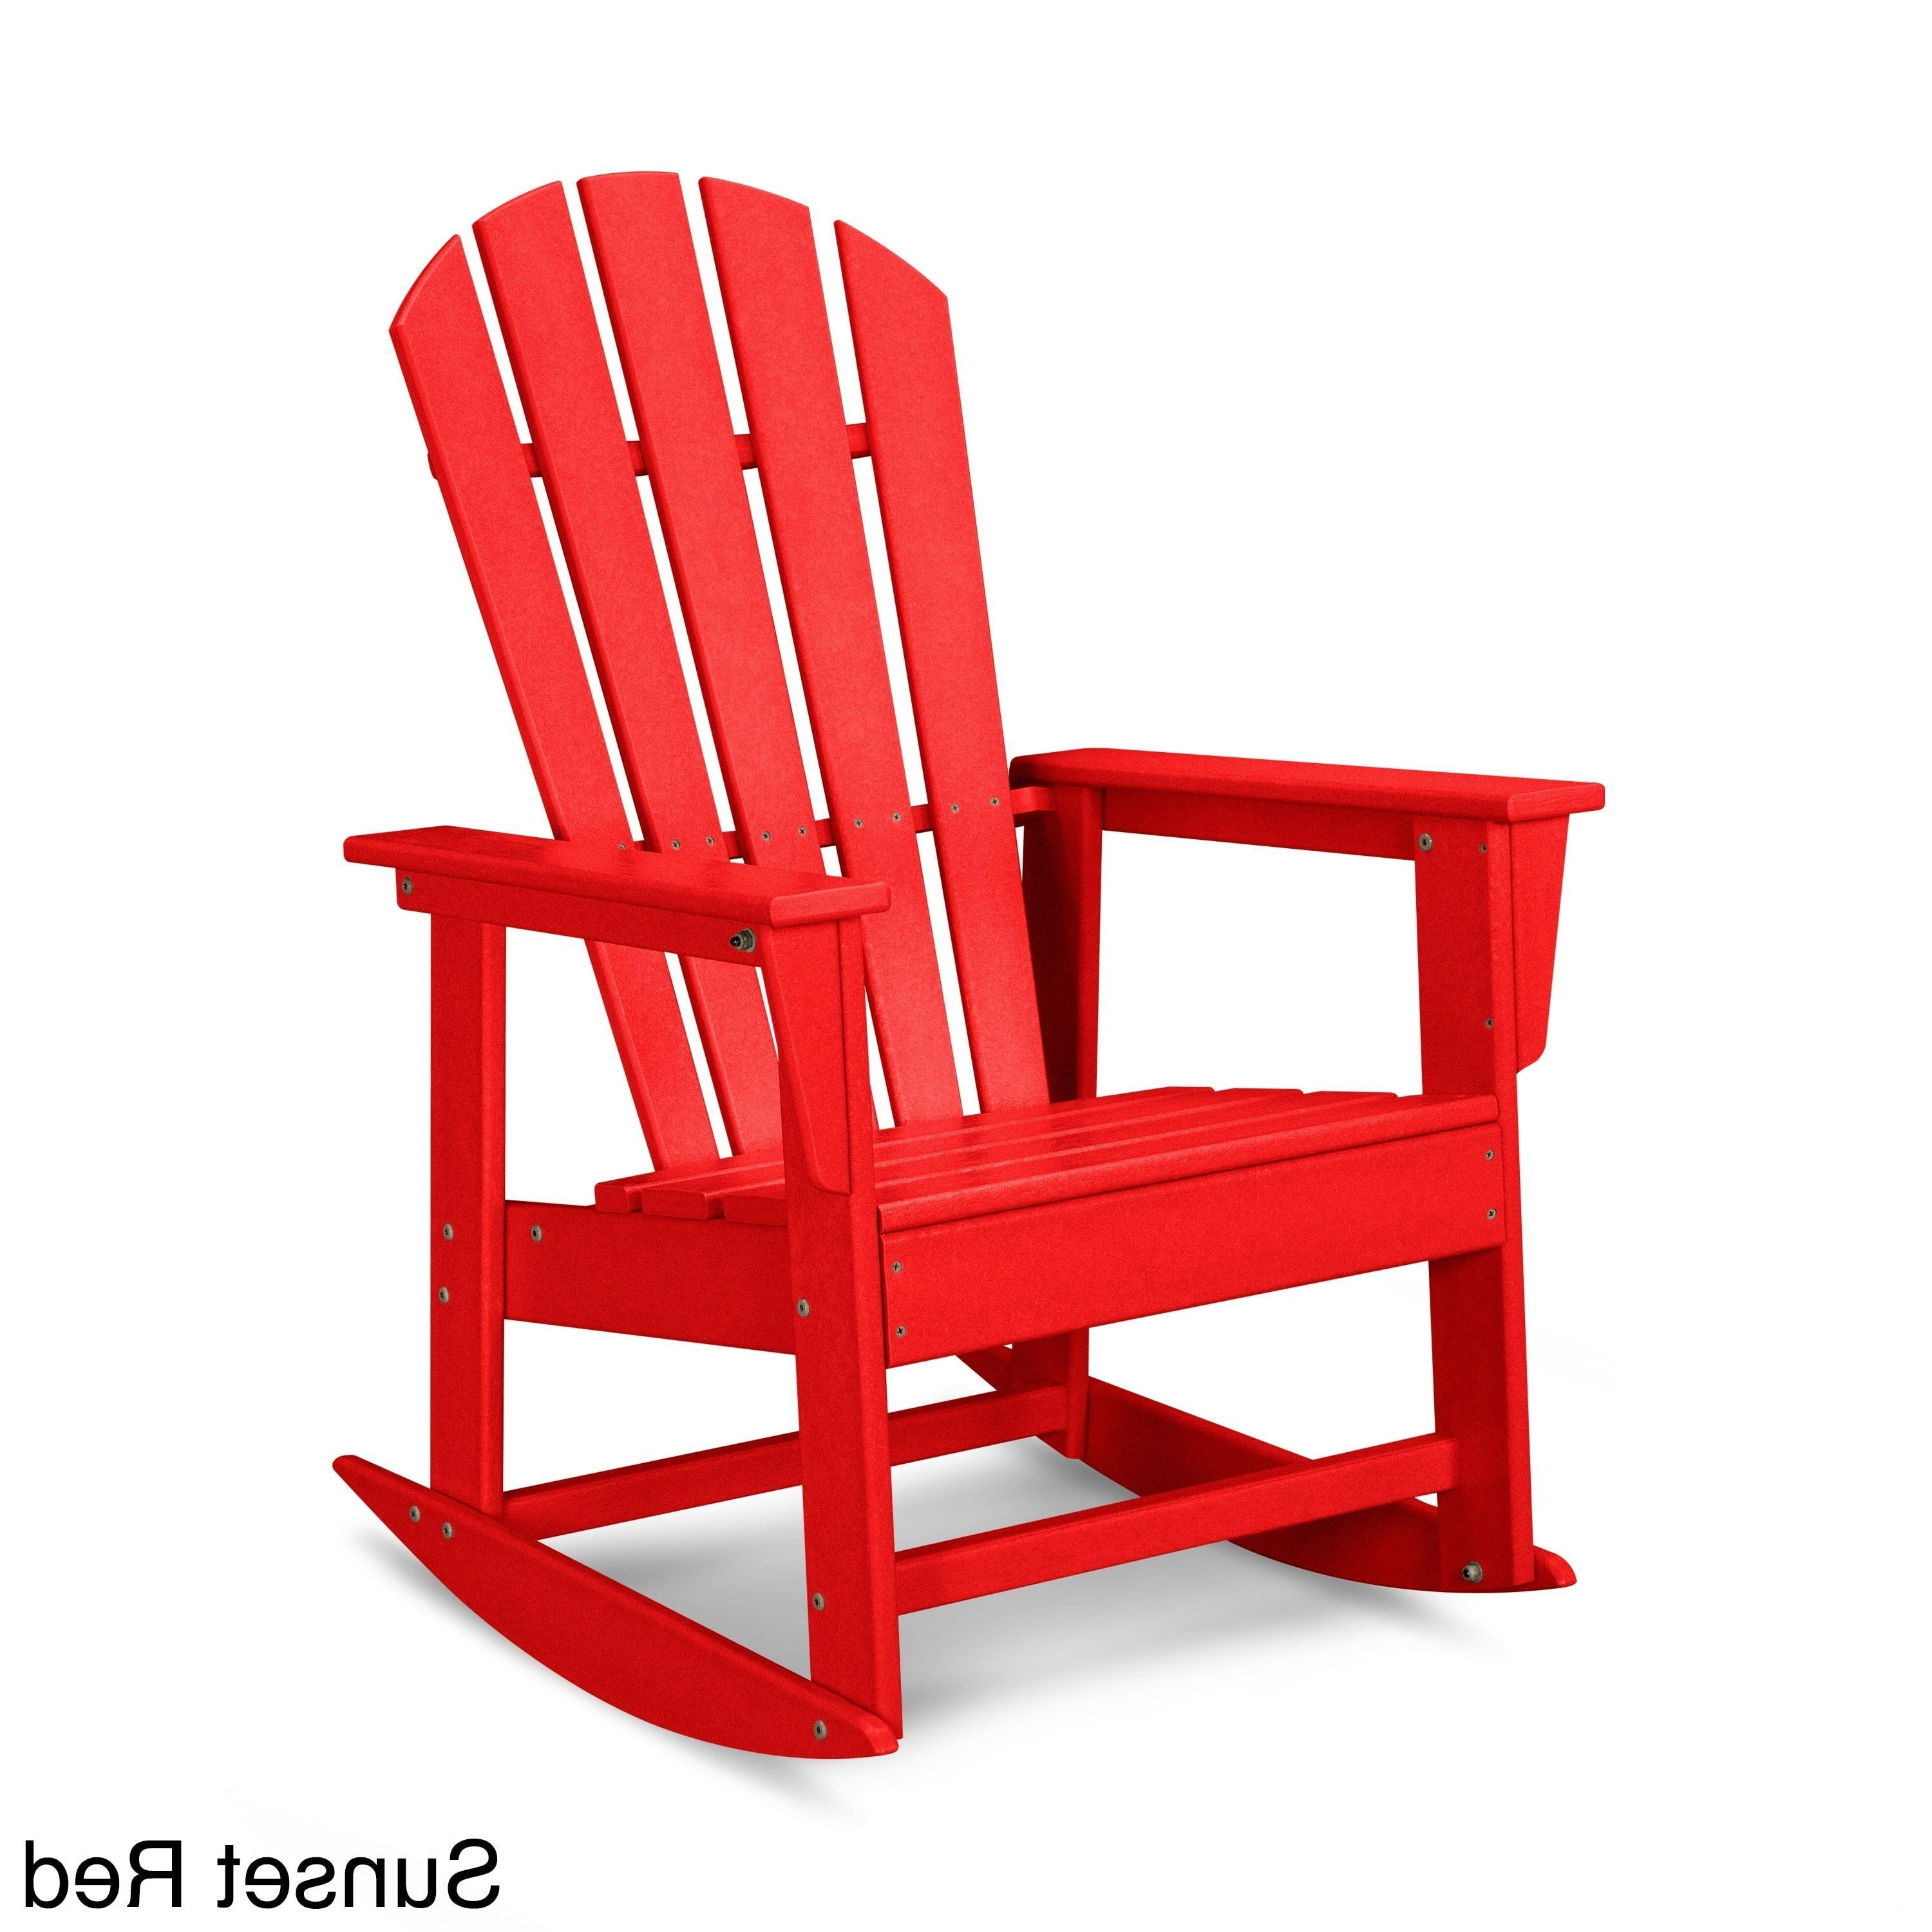 Widely Used Red Patio Rocking Chairs For Red Outdoor Rocking Chair – Attractive Red Patio Furniture Stunning (View 10 of 15)